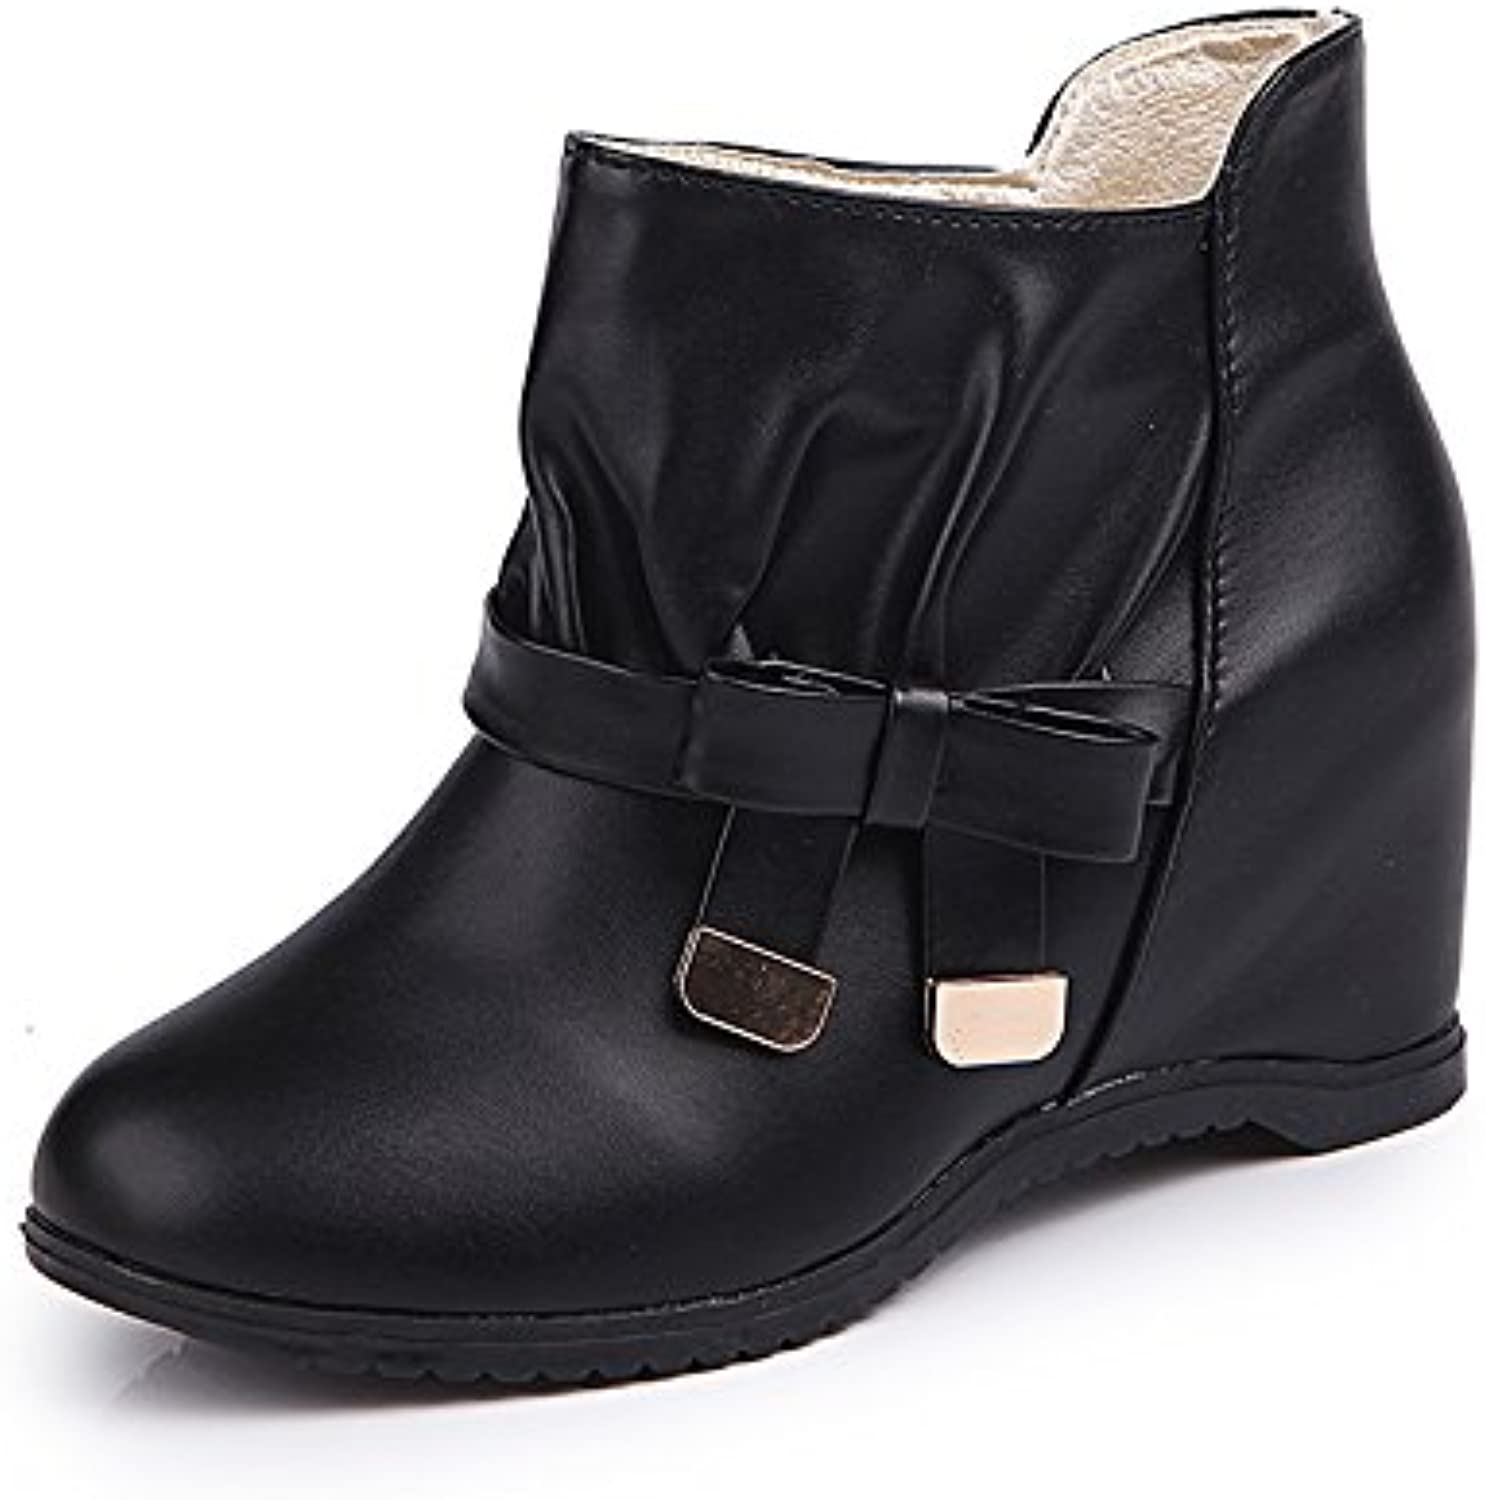 WYMBS Women's shoes Increased Within Short Boots High-Heeled Flat Martin Boots,Black,36